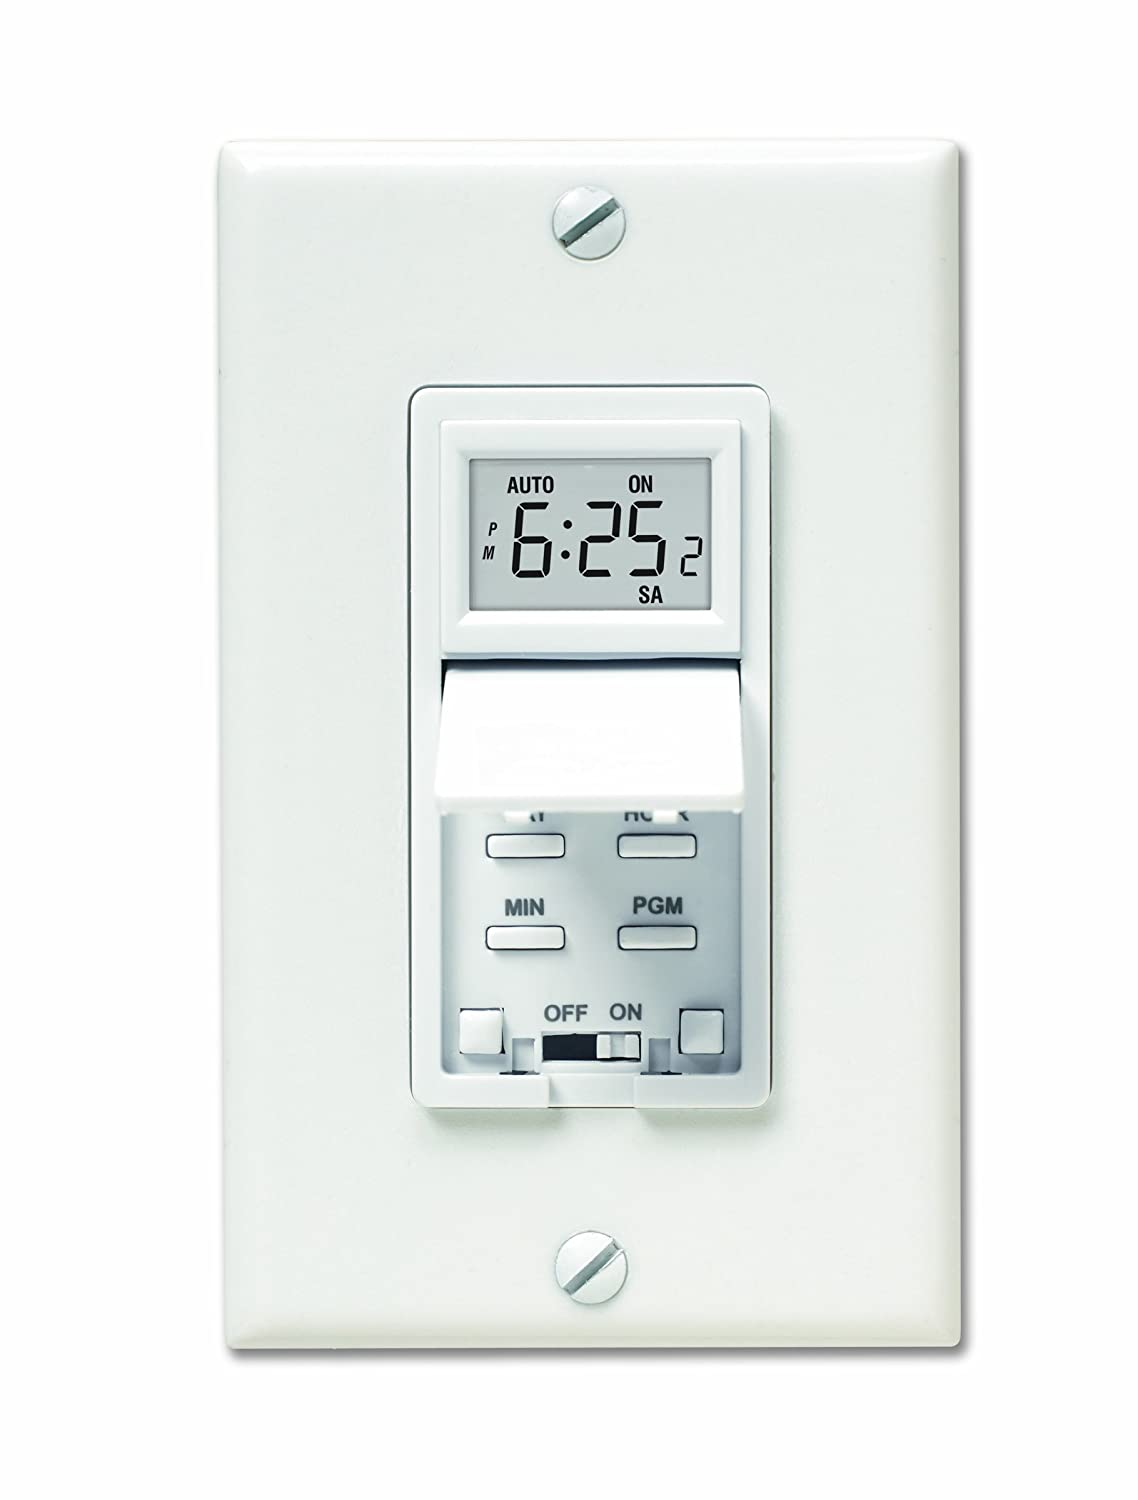 717oiYCarPL._SL1500_ amazon com honeywell rpls530a 7 day programmable timer switch Appliance Switch Honeywell at nearapp.co